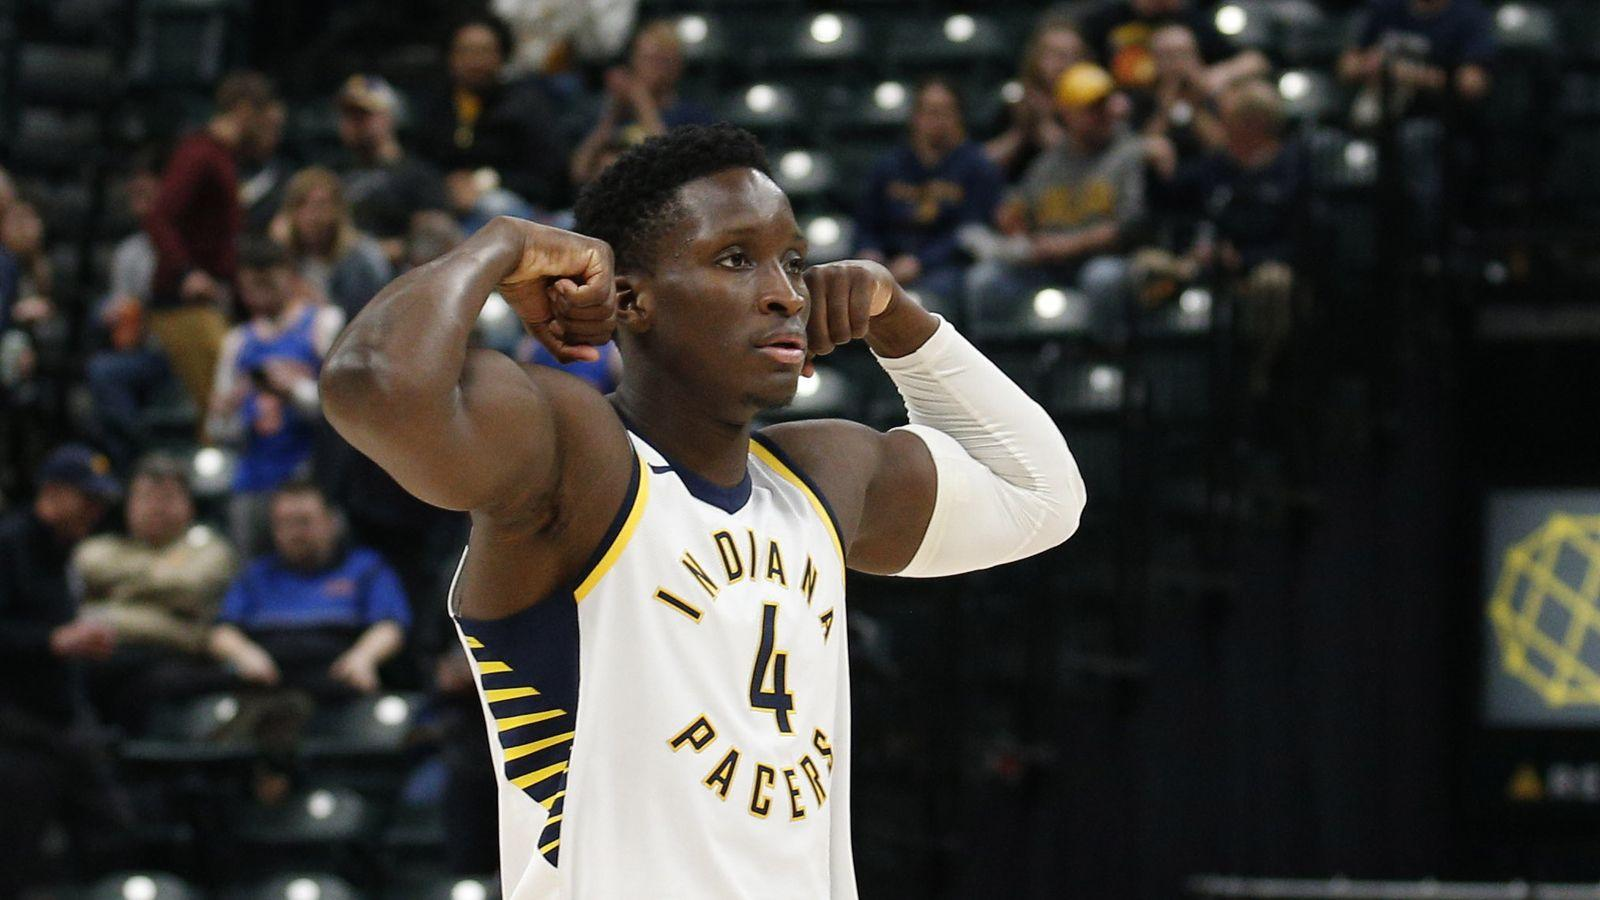 WATCH: Victor Oladipo does 10 push